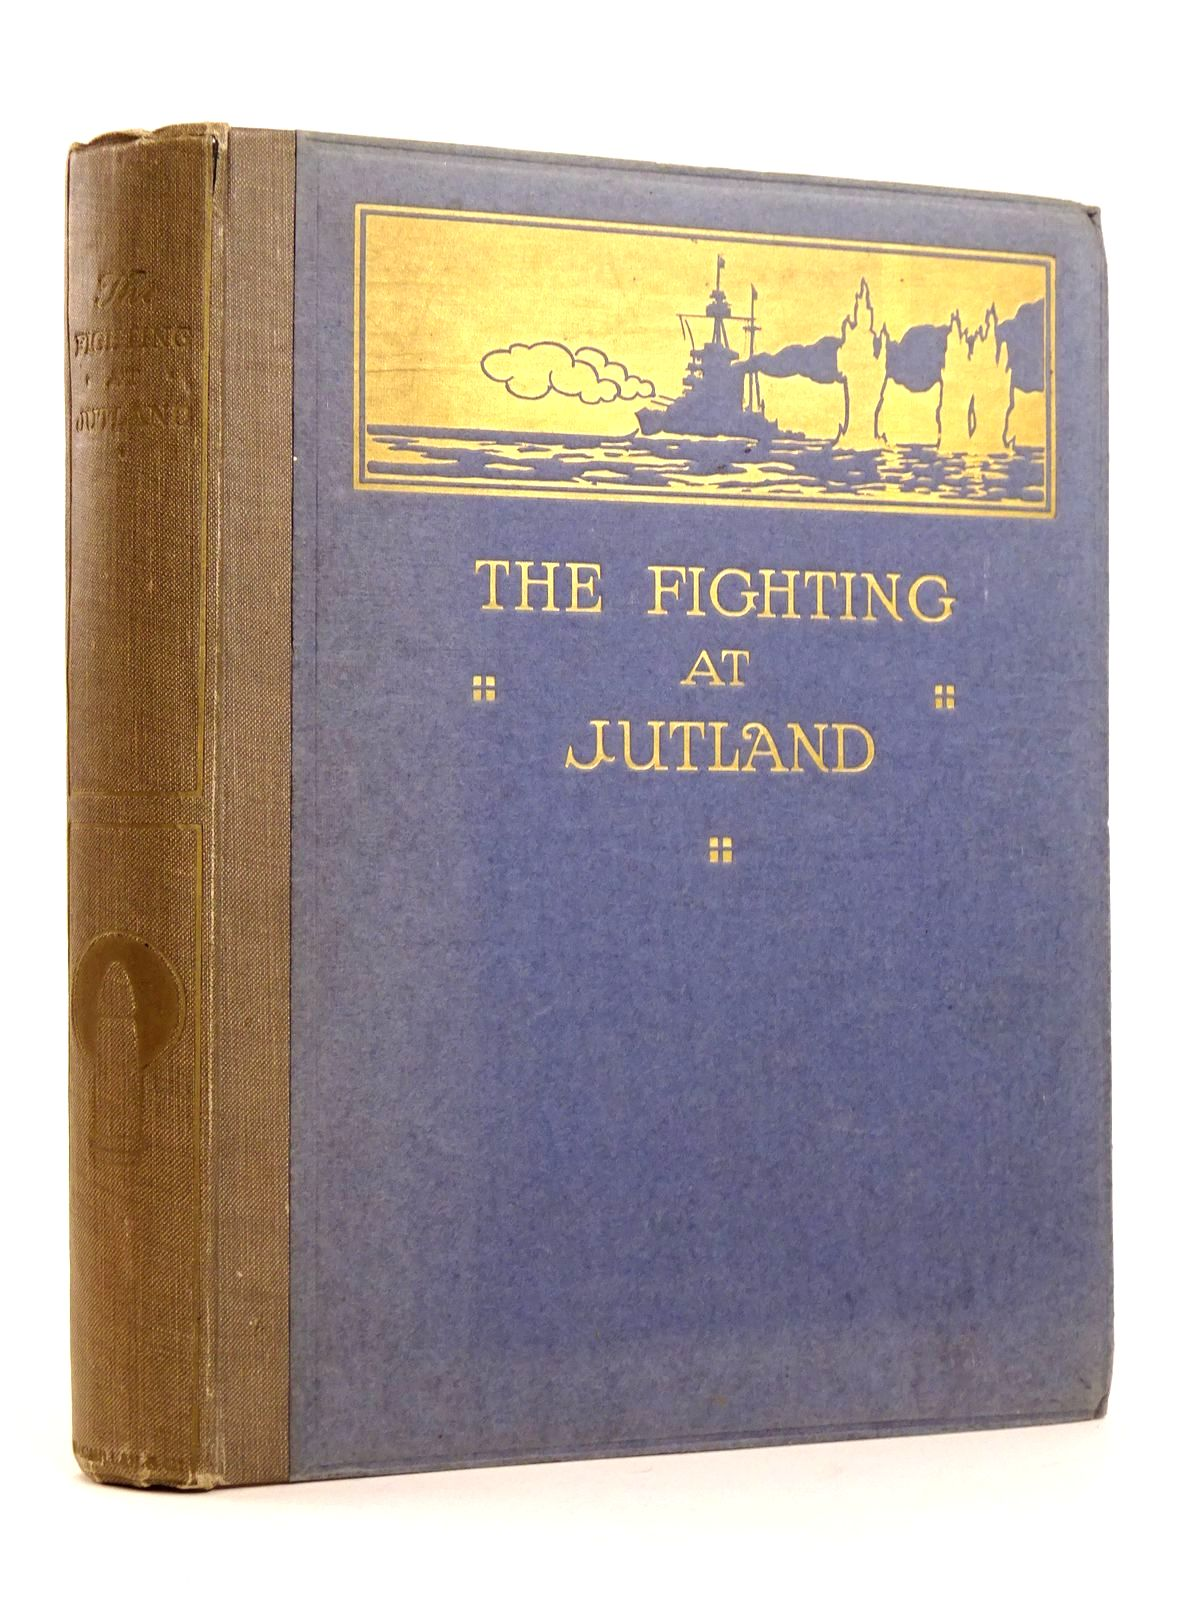 Photo of THE FIGHTING AT JUTLAND written by Fawcett, H.W. Hooper, G.W.W. published by Macmillan & Co. Ltd. (STOCK CODE: 1818373)  for sale by Stella & Rose's Books